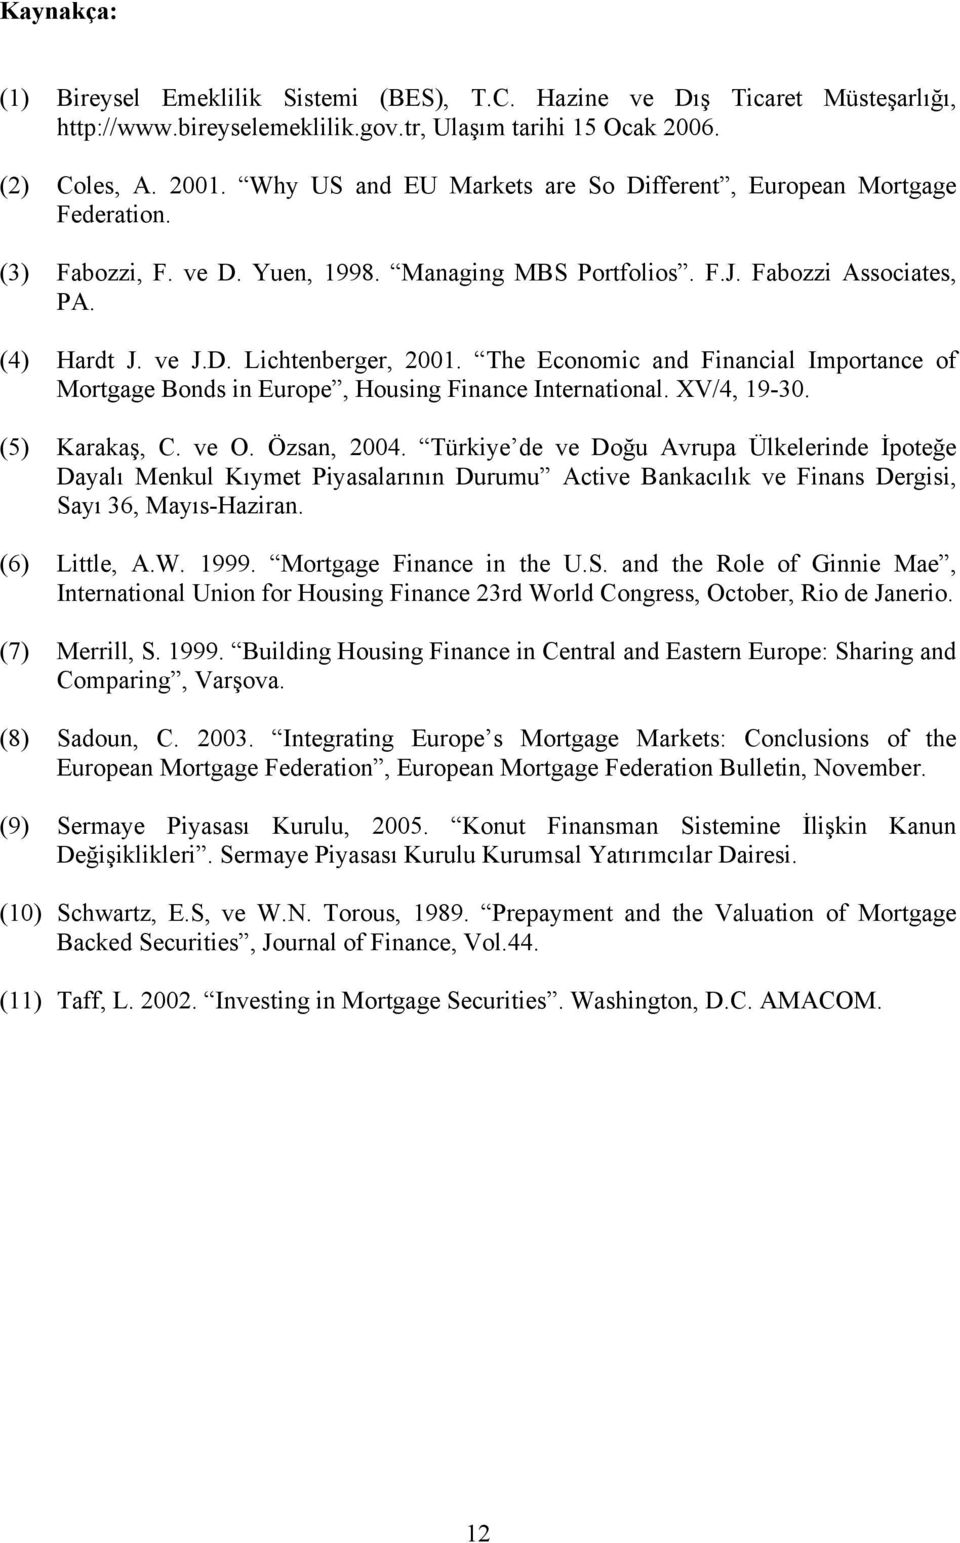 The Economic and Financial Importance of Mortgage Bonds in Europe, Housing Finance International. XV/4, 19-30. (5) Karakaş, C. ve O. Özsan, 2004.